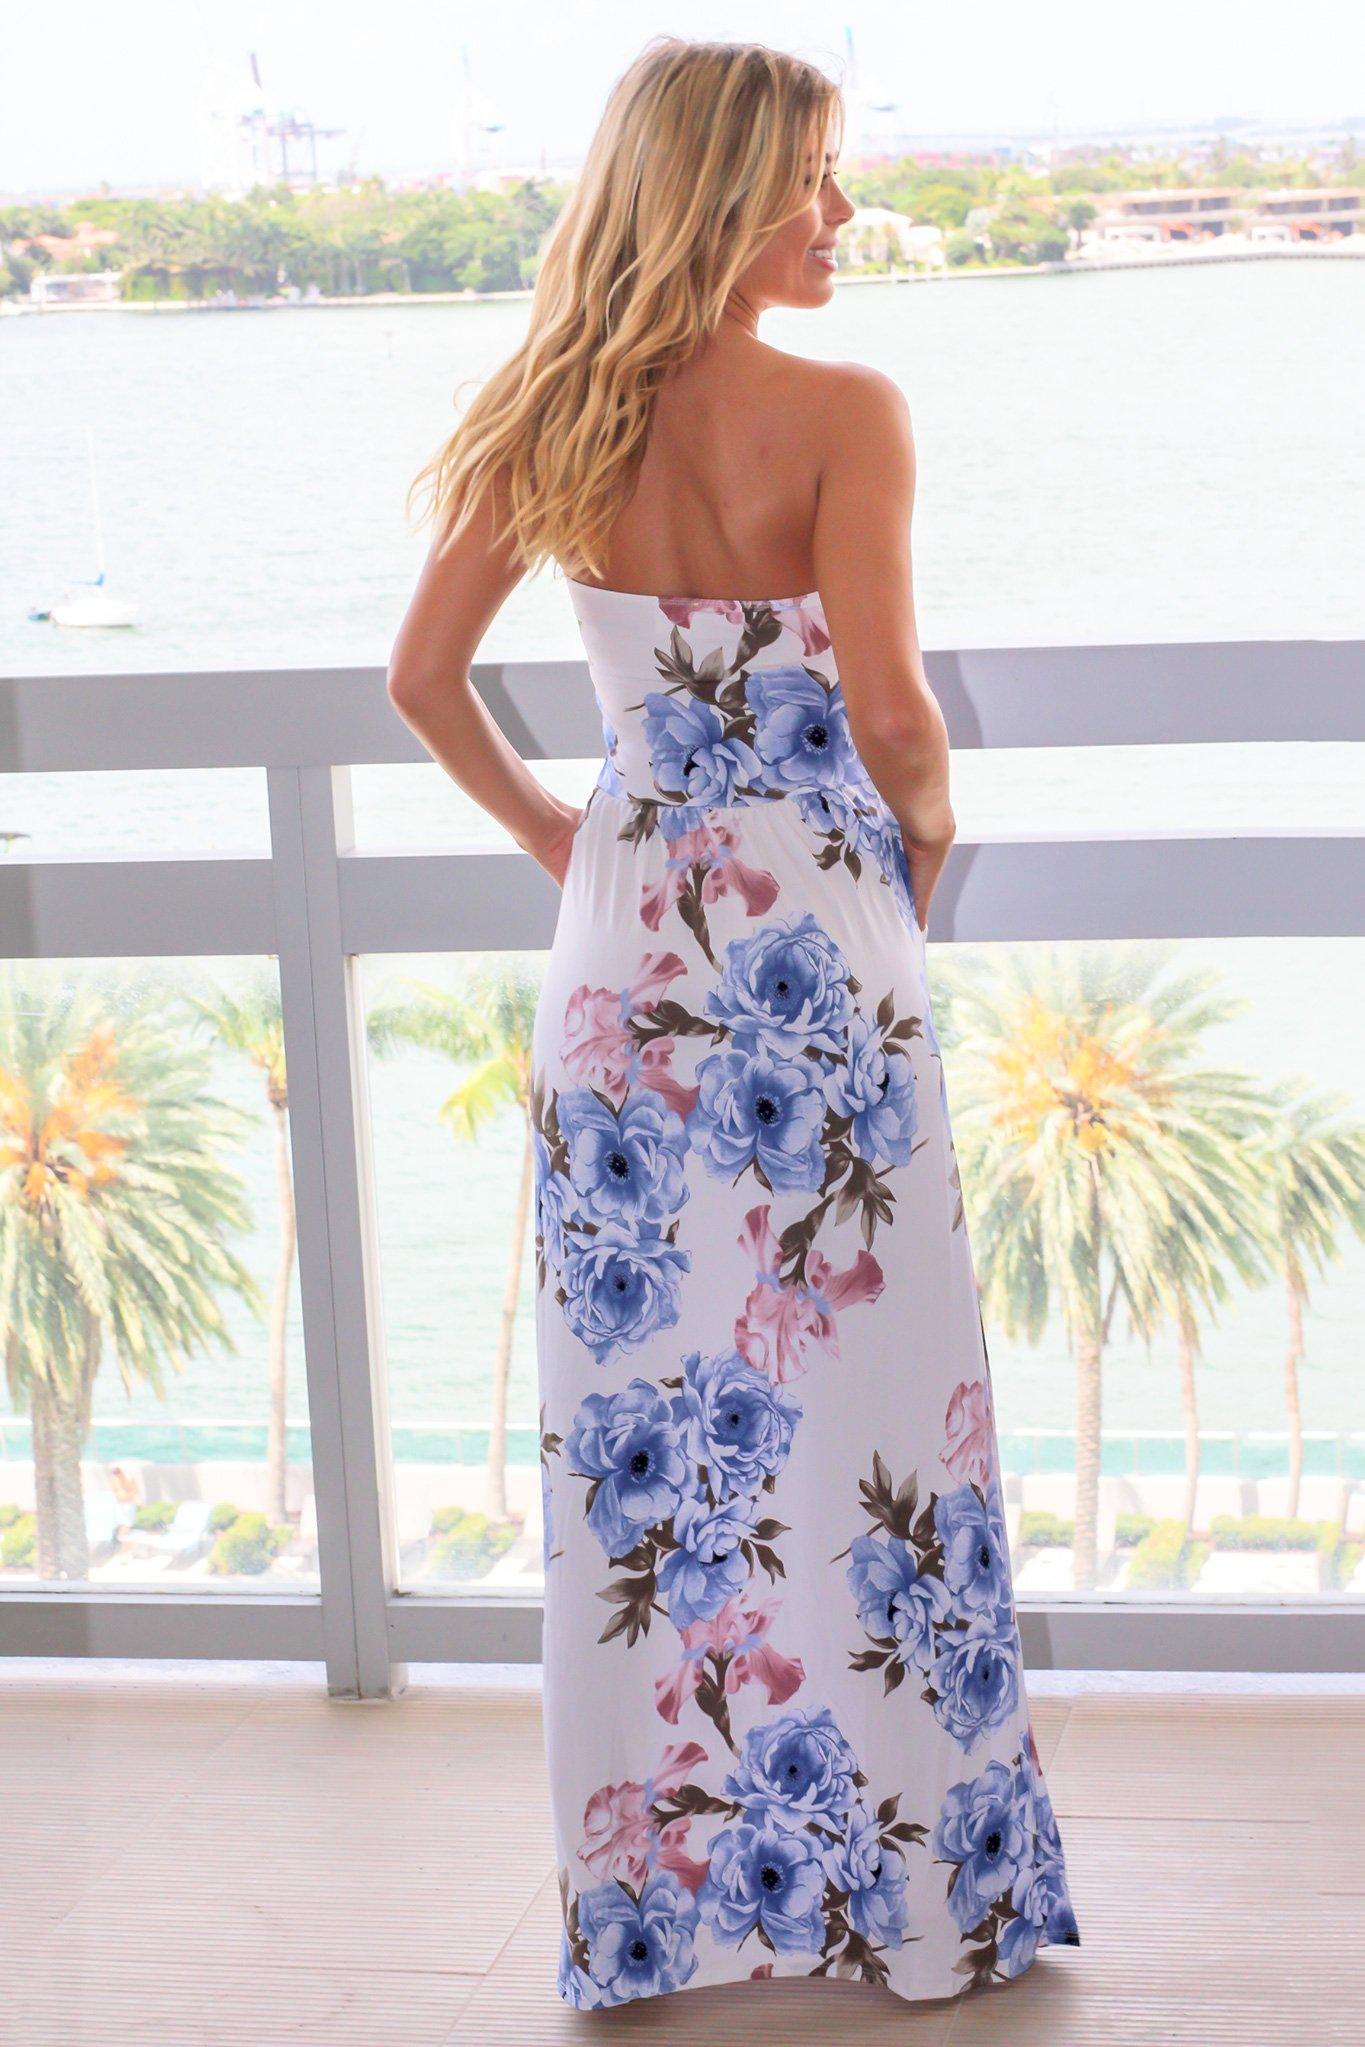 Ivory and Dusty Blue Floral Strapless Maxi Dress